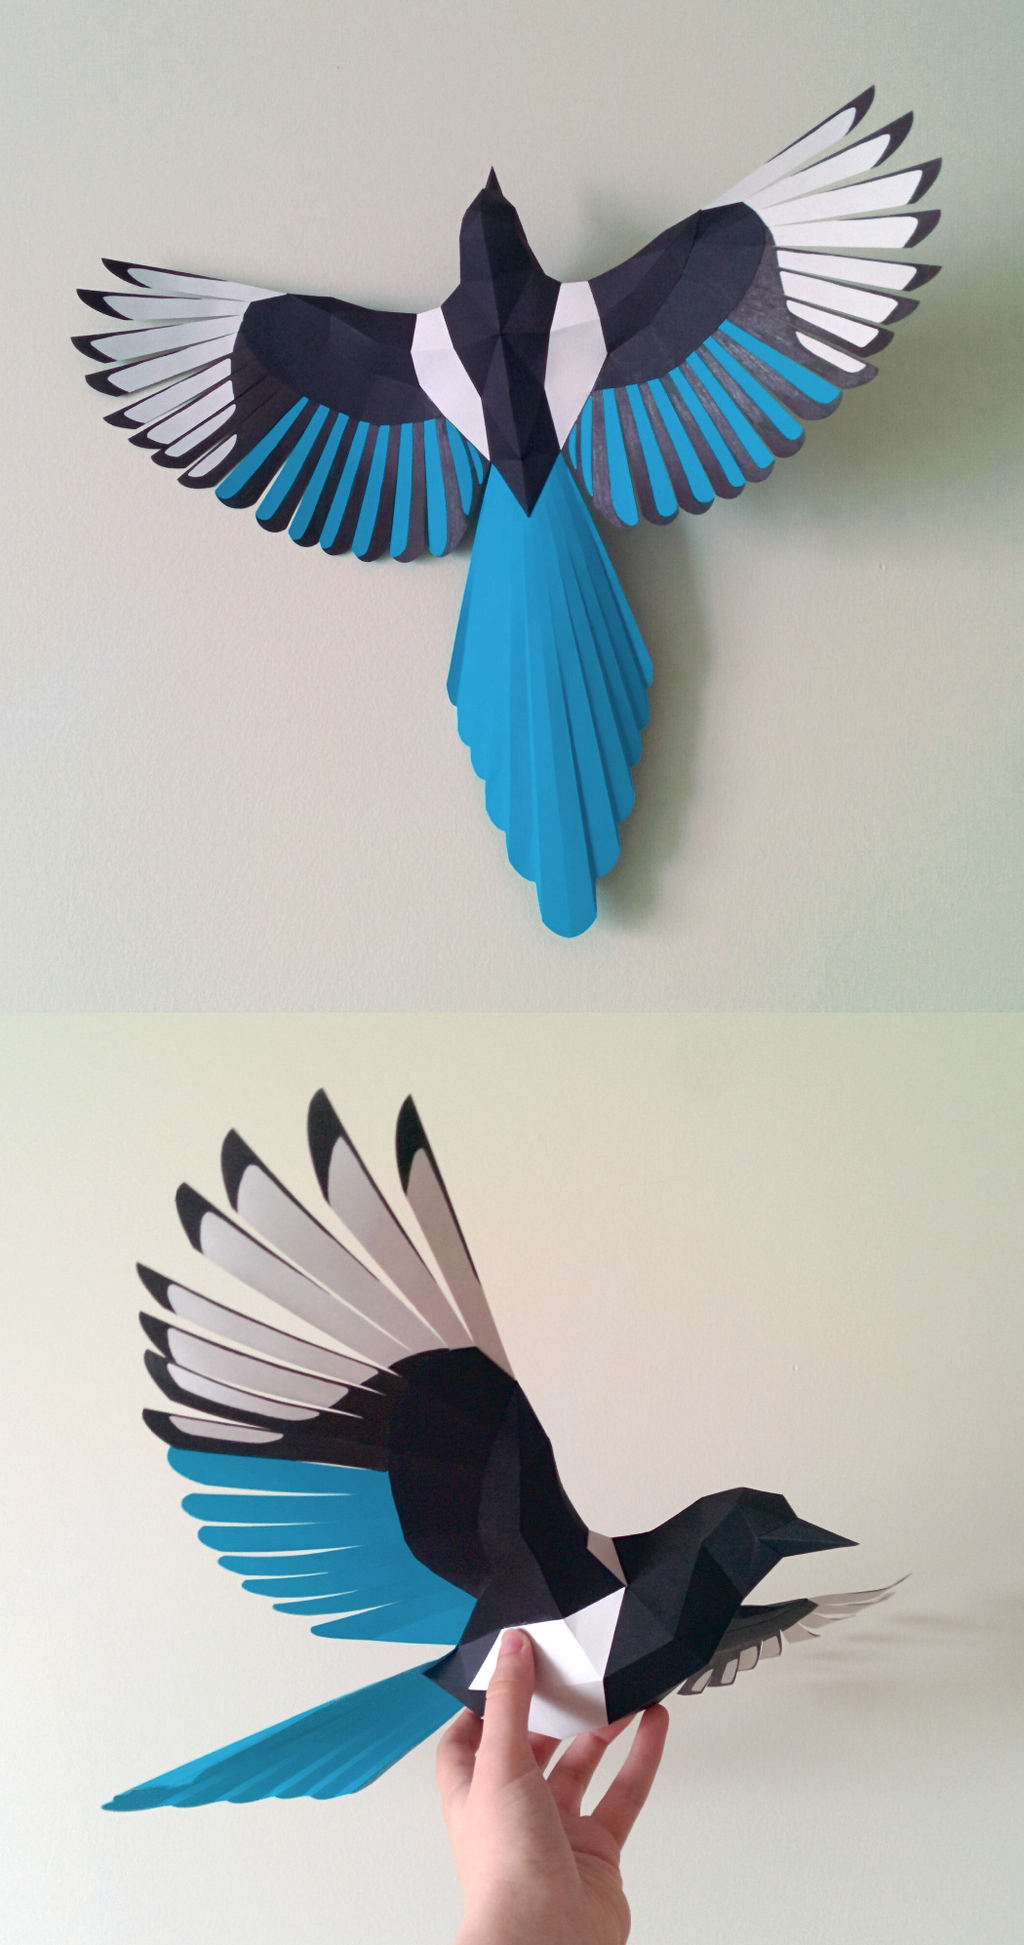 Magpie Papercraft by Gedelgo